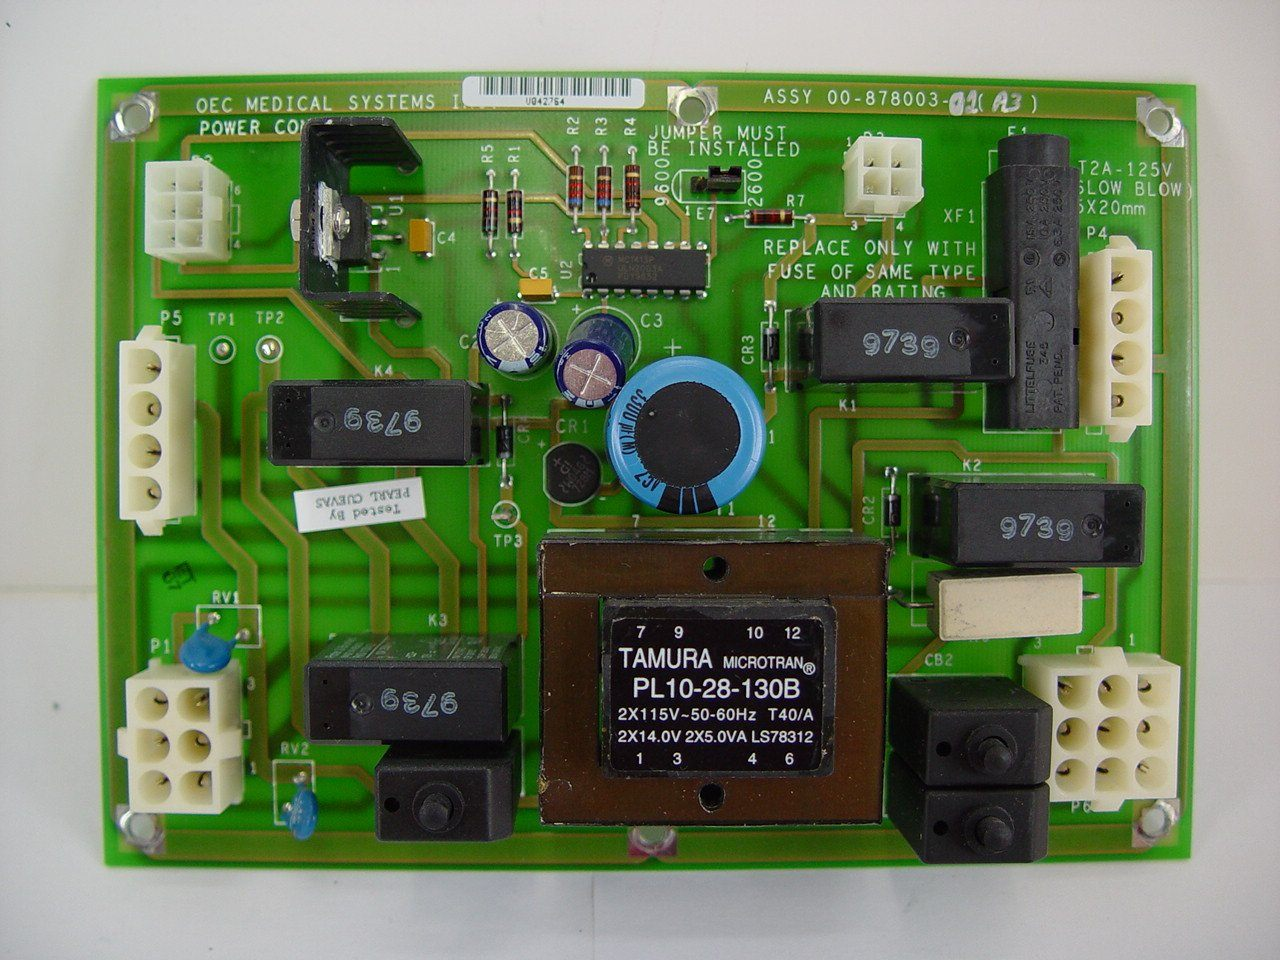 PCB Boards - OEC-9600 POWER CONTROL PCB (00-878003-01)